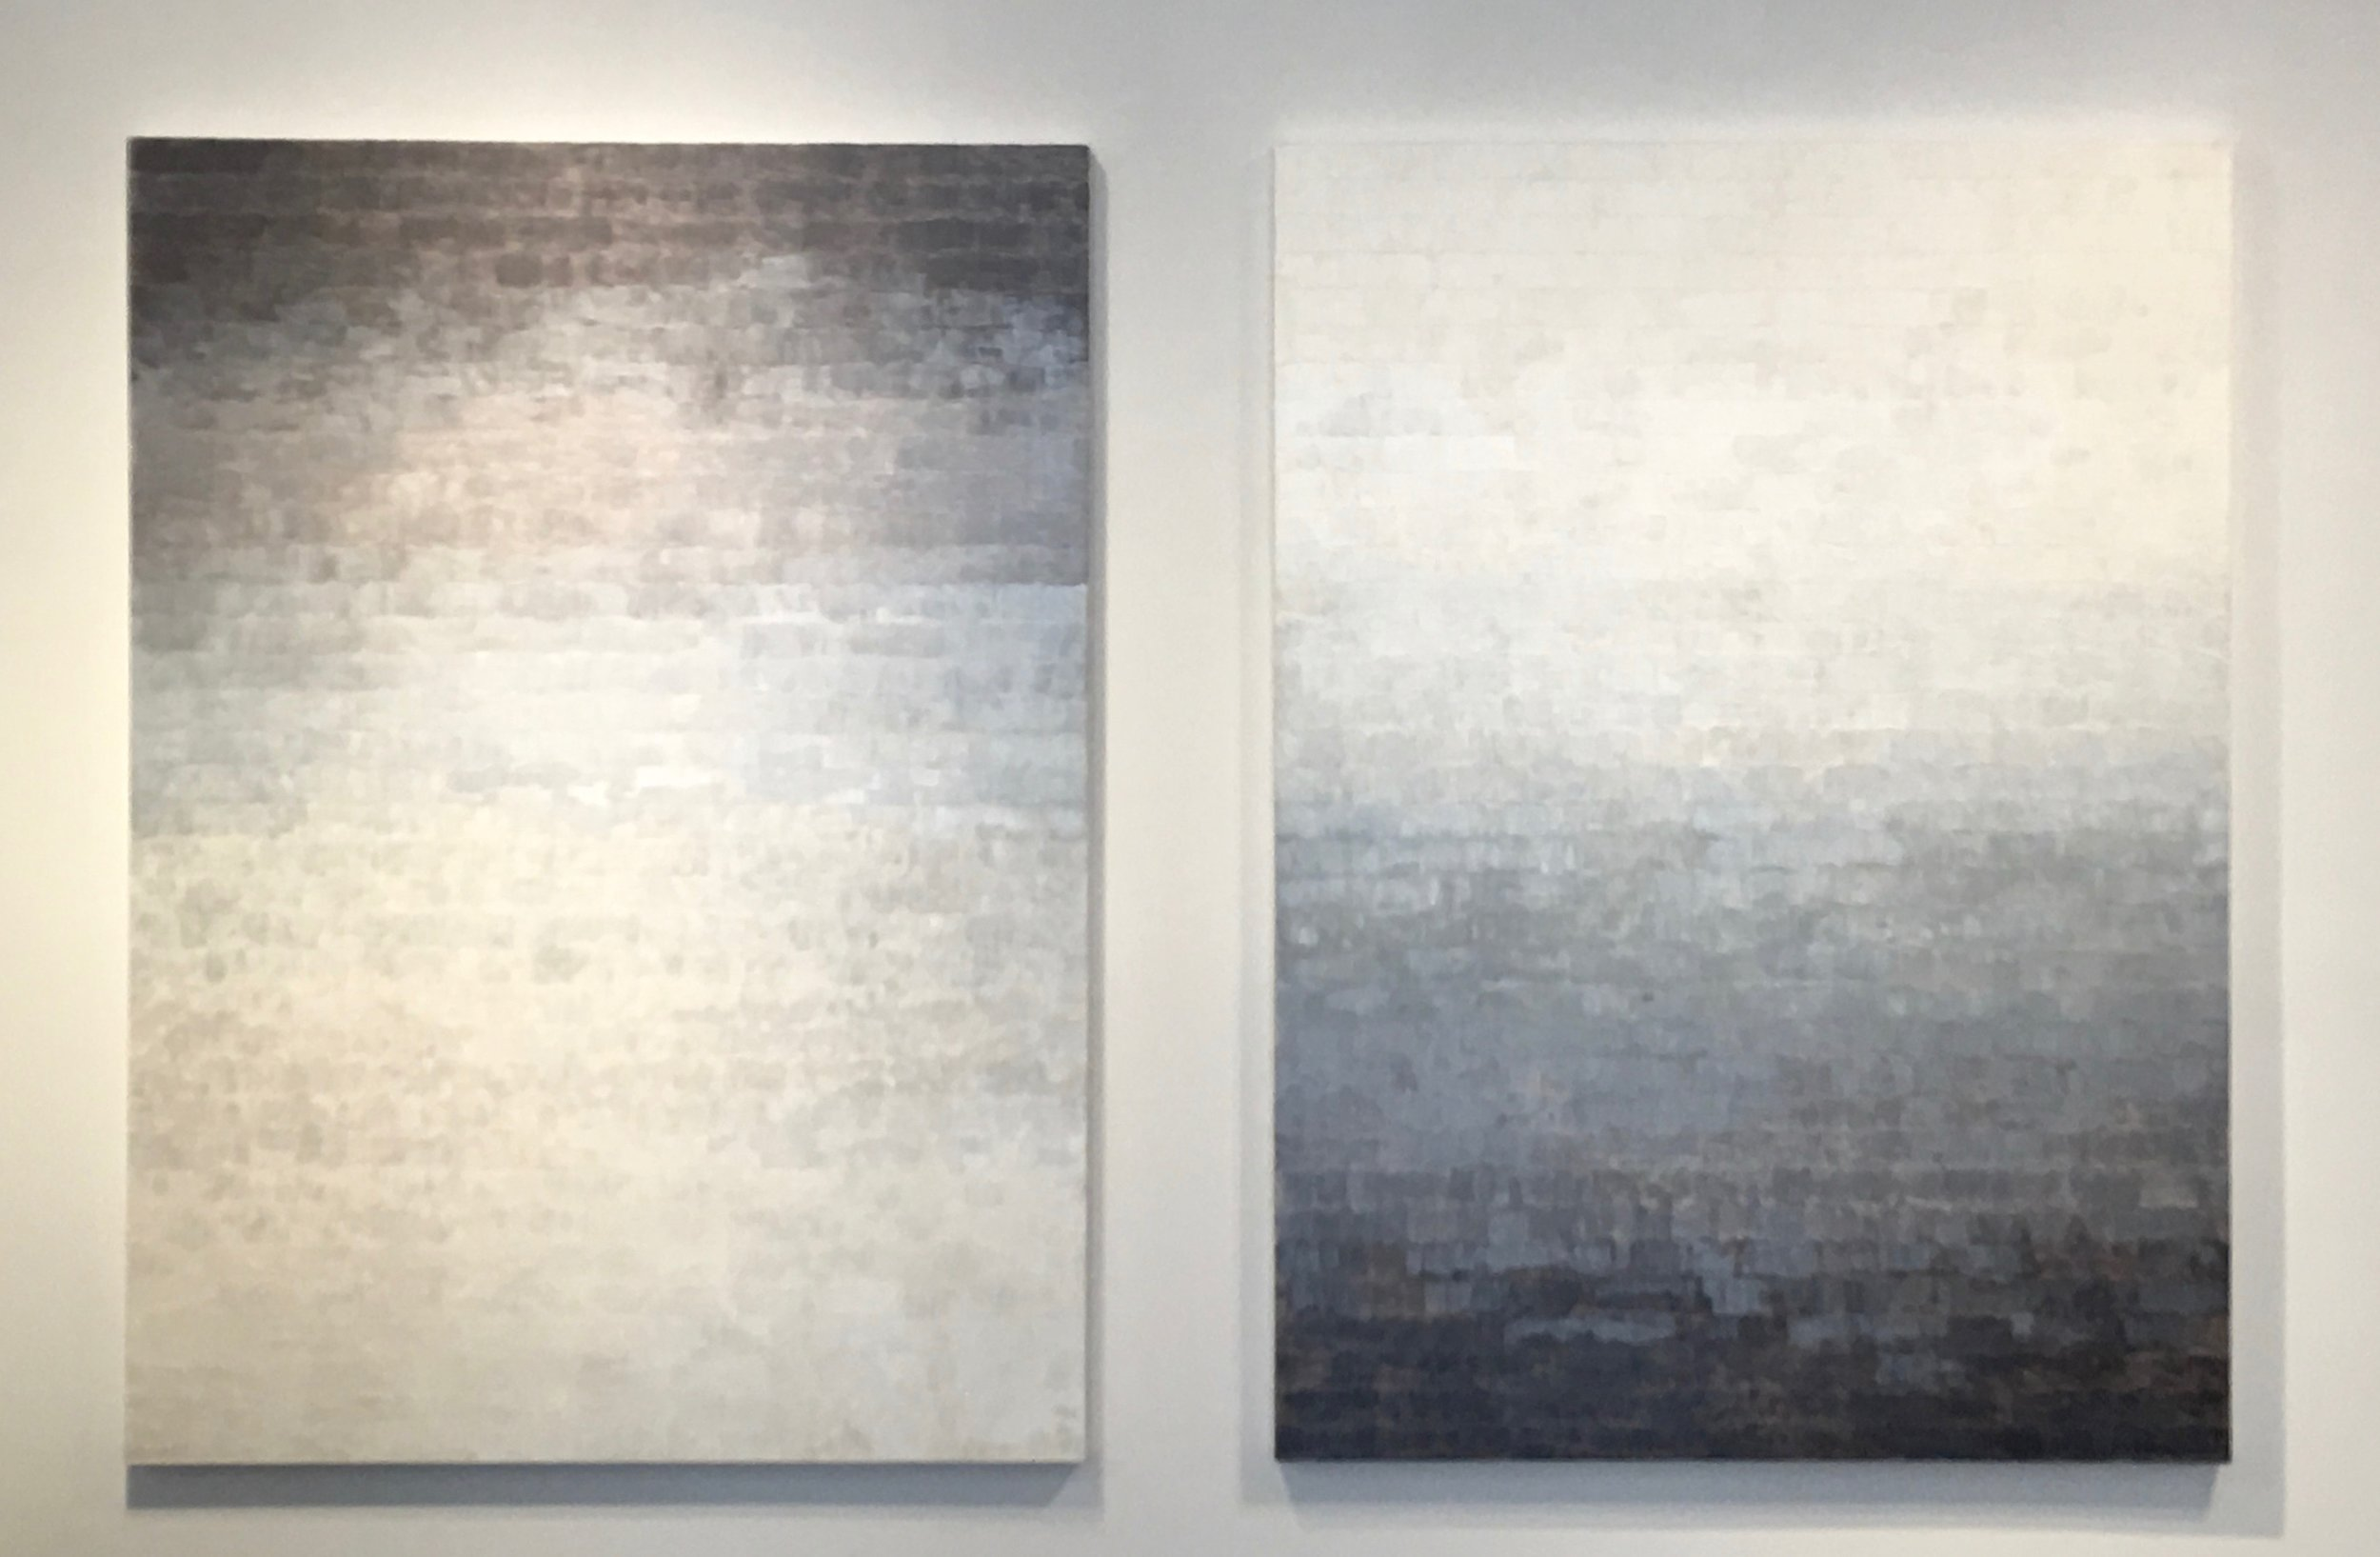 Pegan Brooke, S-239 S-240  (diptych), 2017, Oil on canvas, 72 x 52 inches each